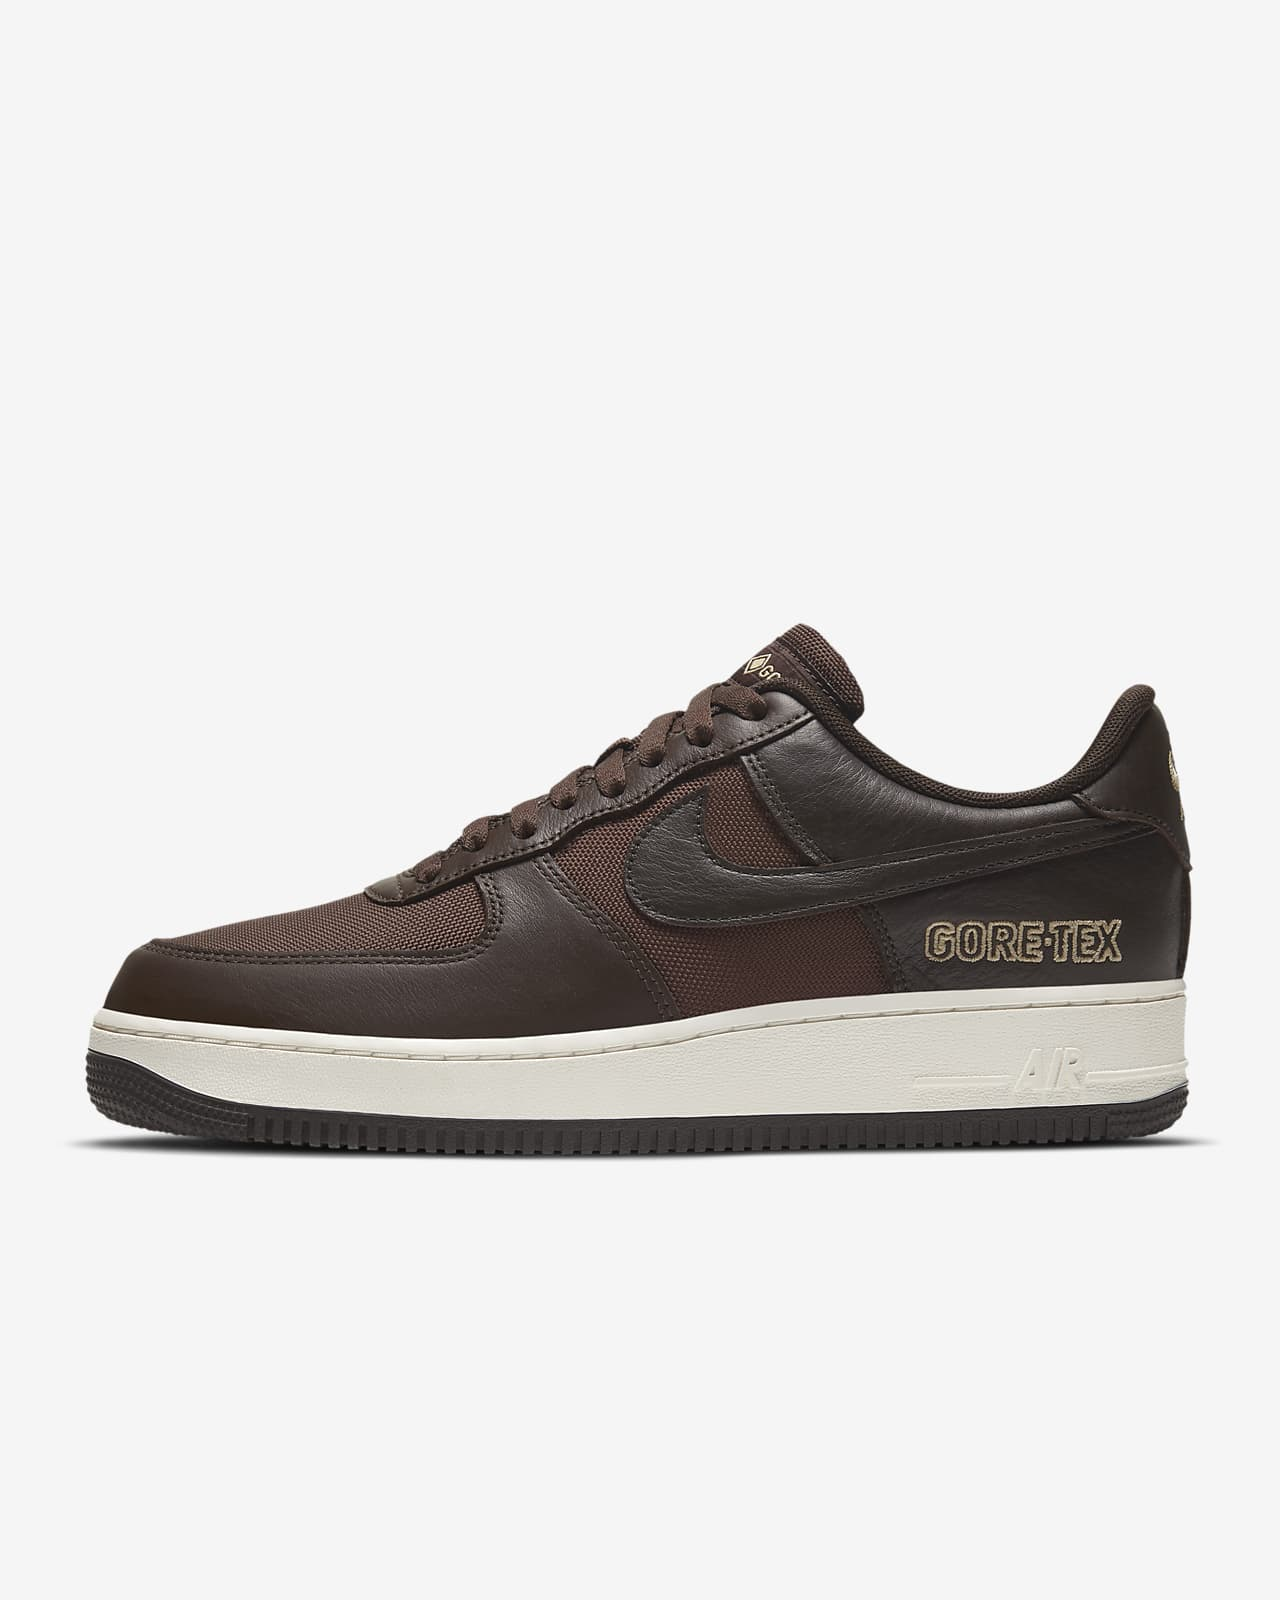 marco heroico miseria  Nike Air Force 1 GTX Men's Shoe. Nike AU